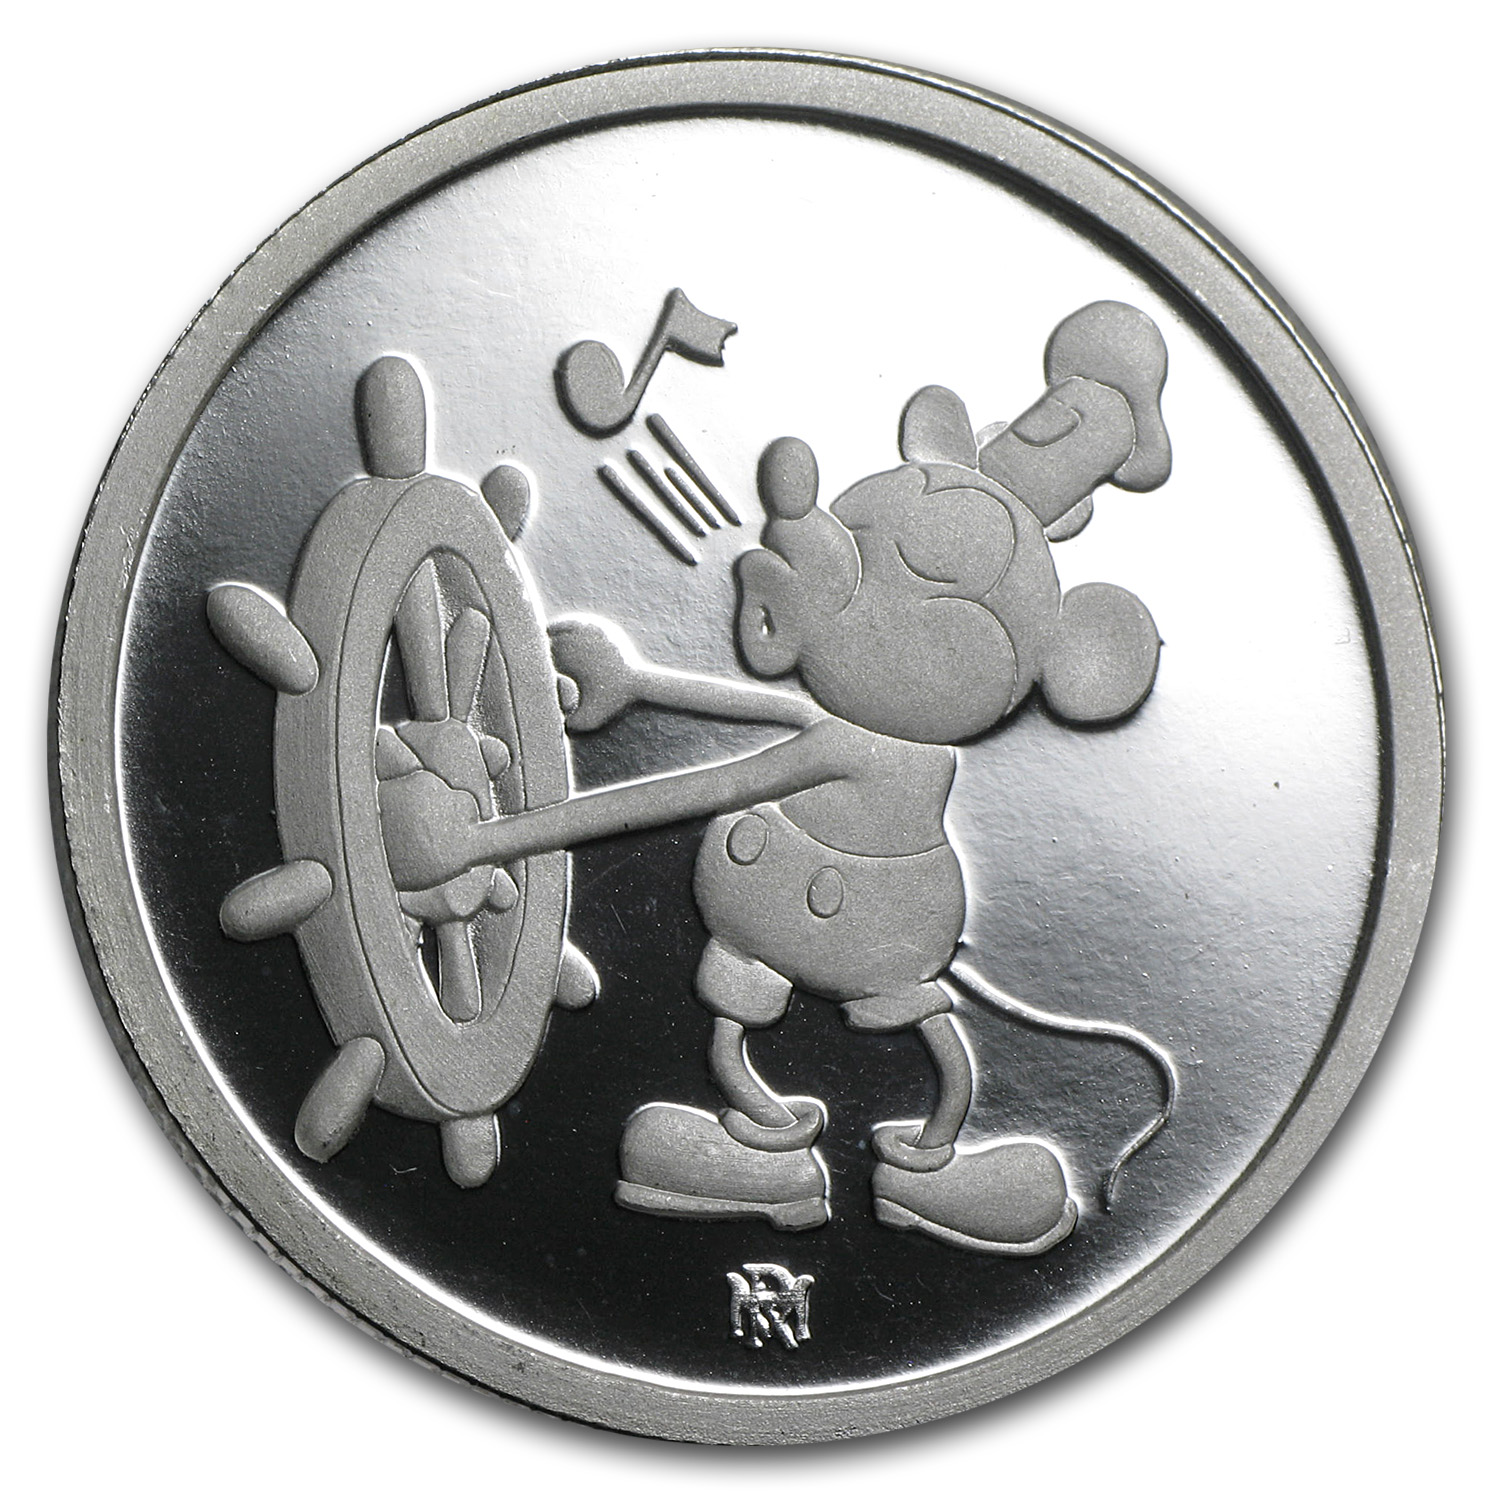 1 oz Silver Round - Mickey Mouse 60 Years (Proof)